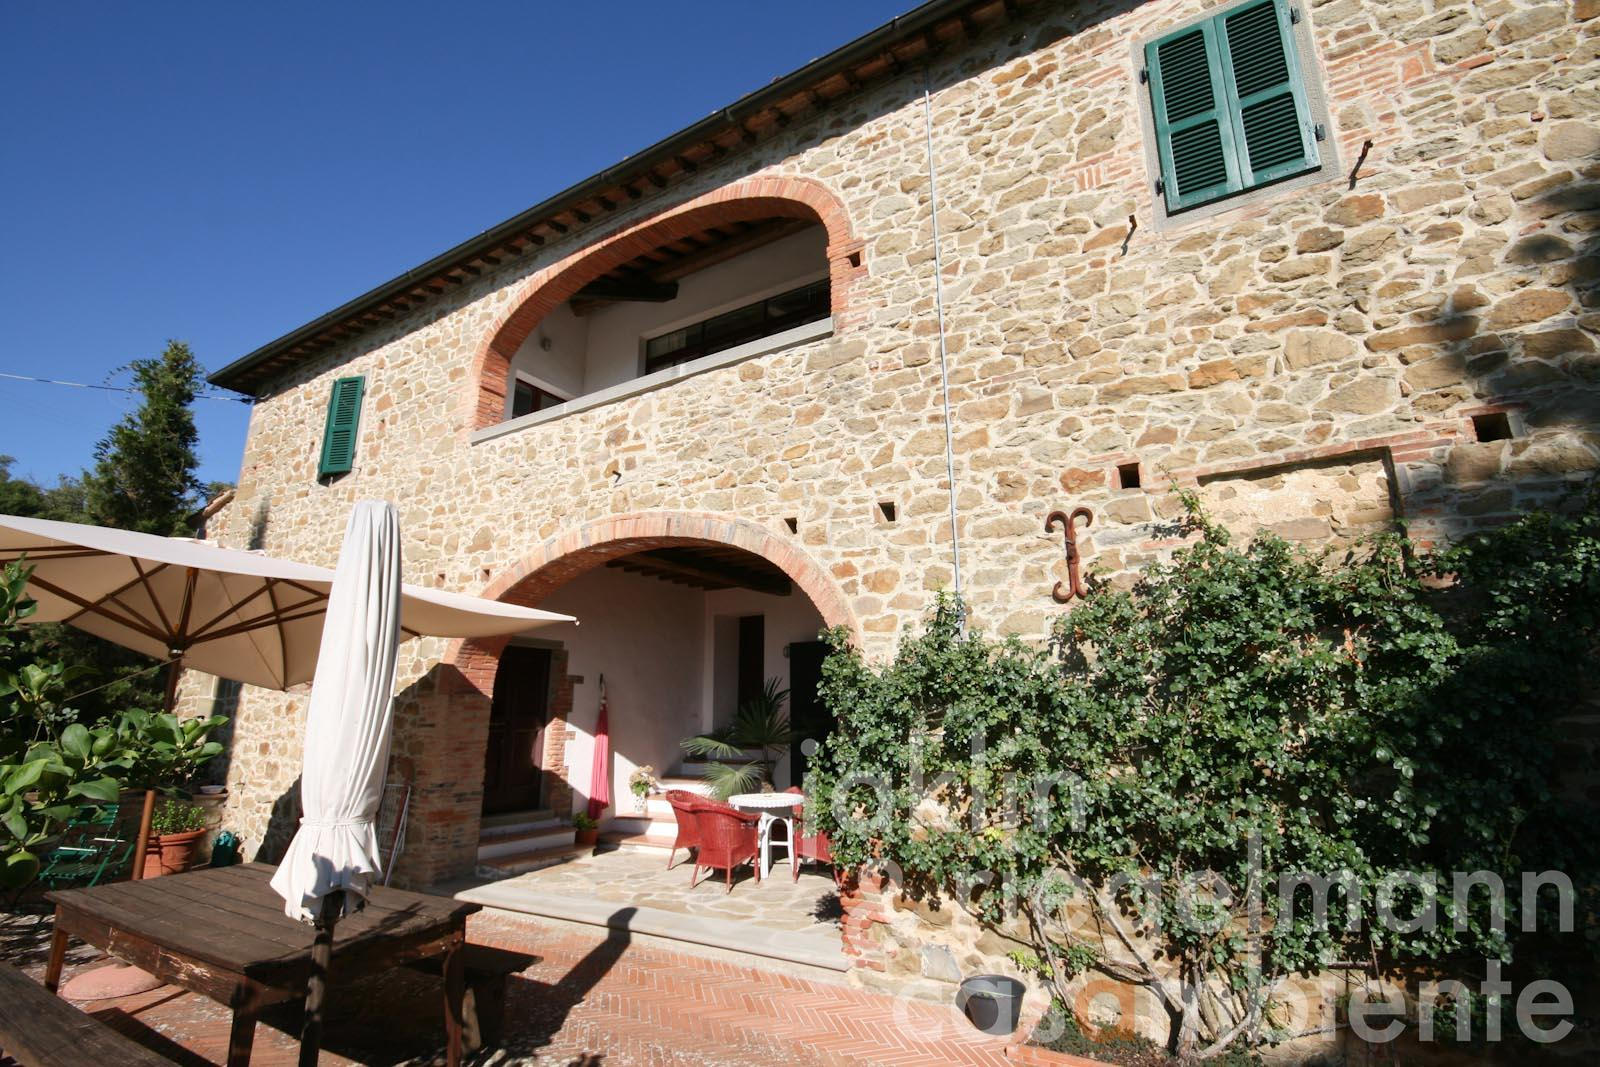 The Tuscan country estate for sale with wine production, olive grove and pool in panoramic setting